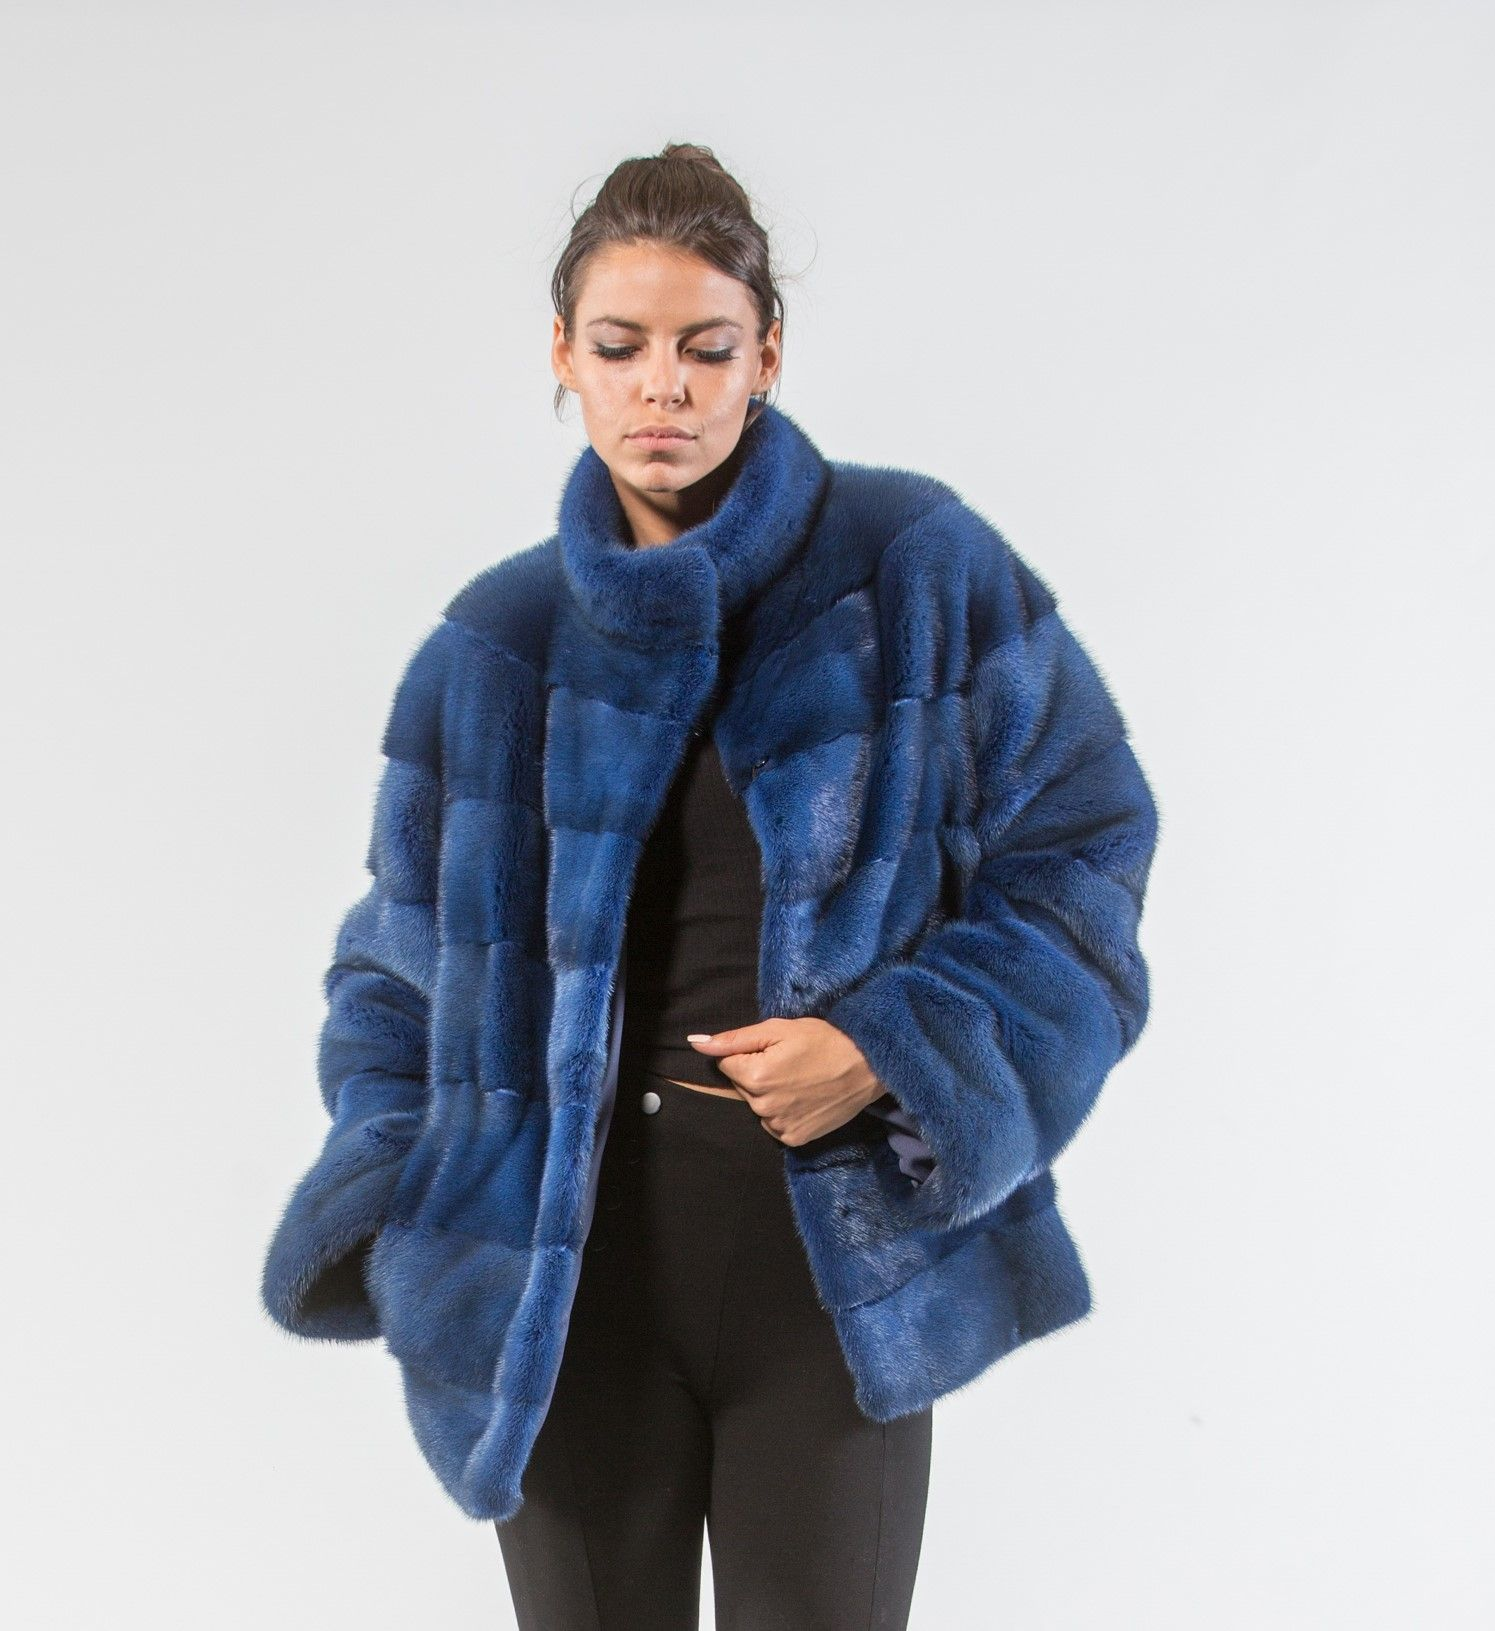 196aadc1c345 Electric Blue Mink Fur Jacket  electricblue  mink  fur  jacket  real  style   realfur  elegant  haute  luxury chic  outfit  women  classy  online  store